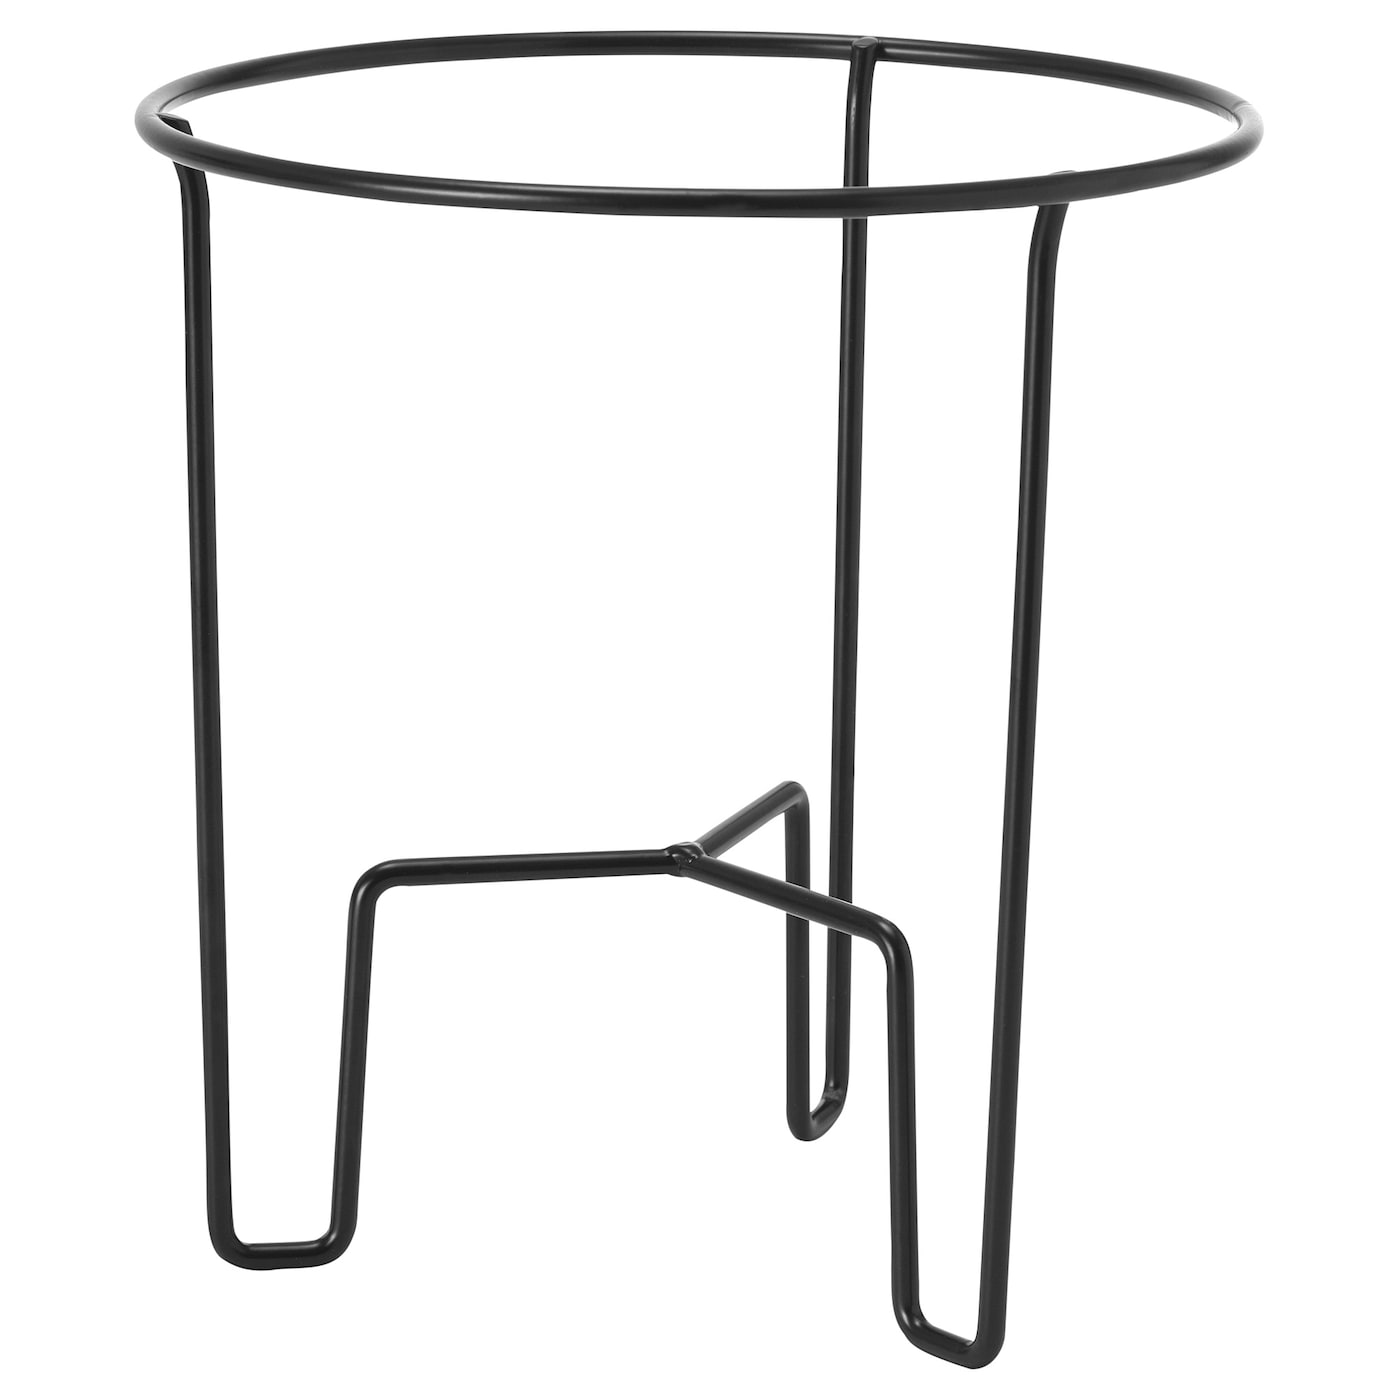 IKEA SOMMAR 2018 plant stand Suitable for both indoor and outdoor use.